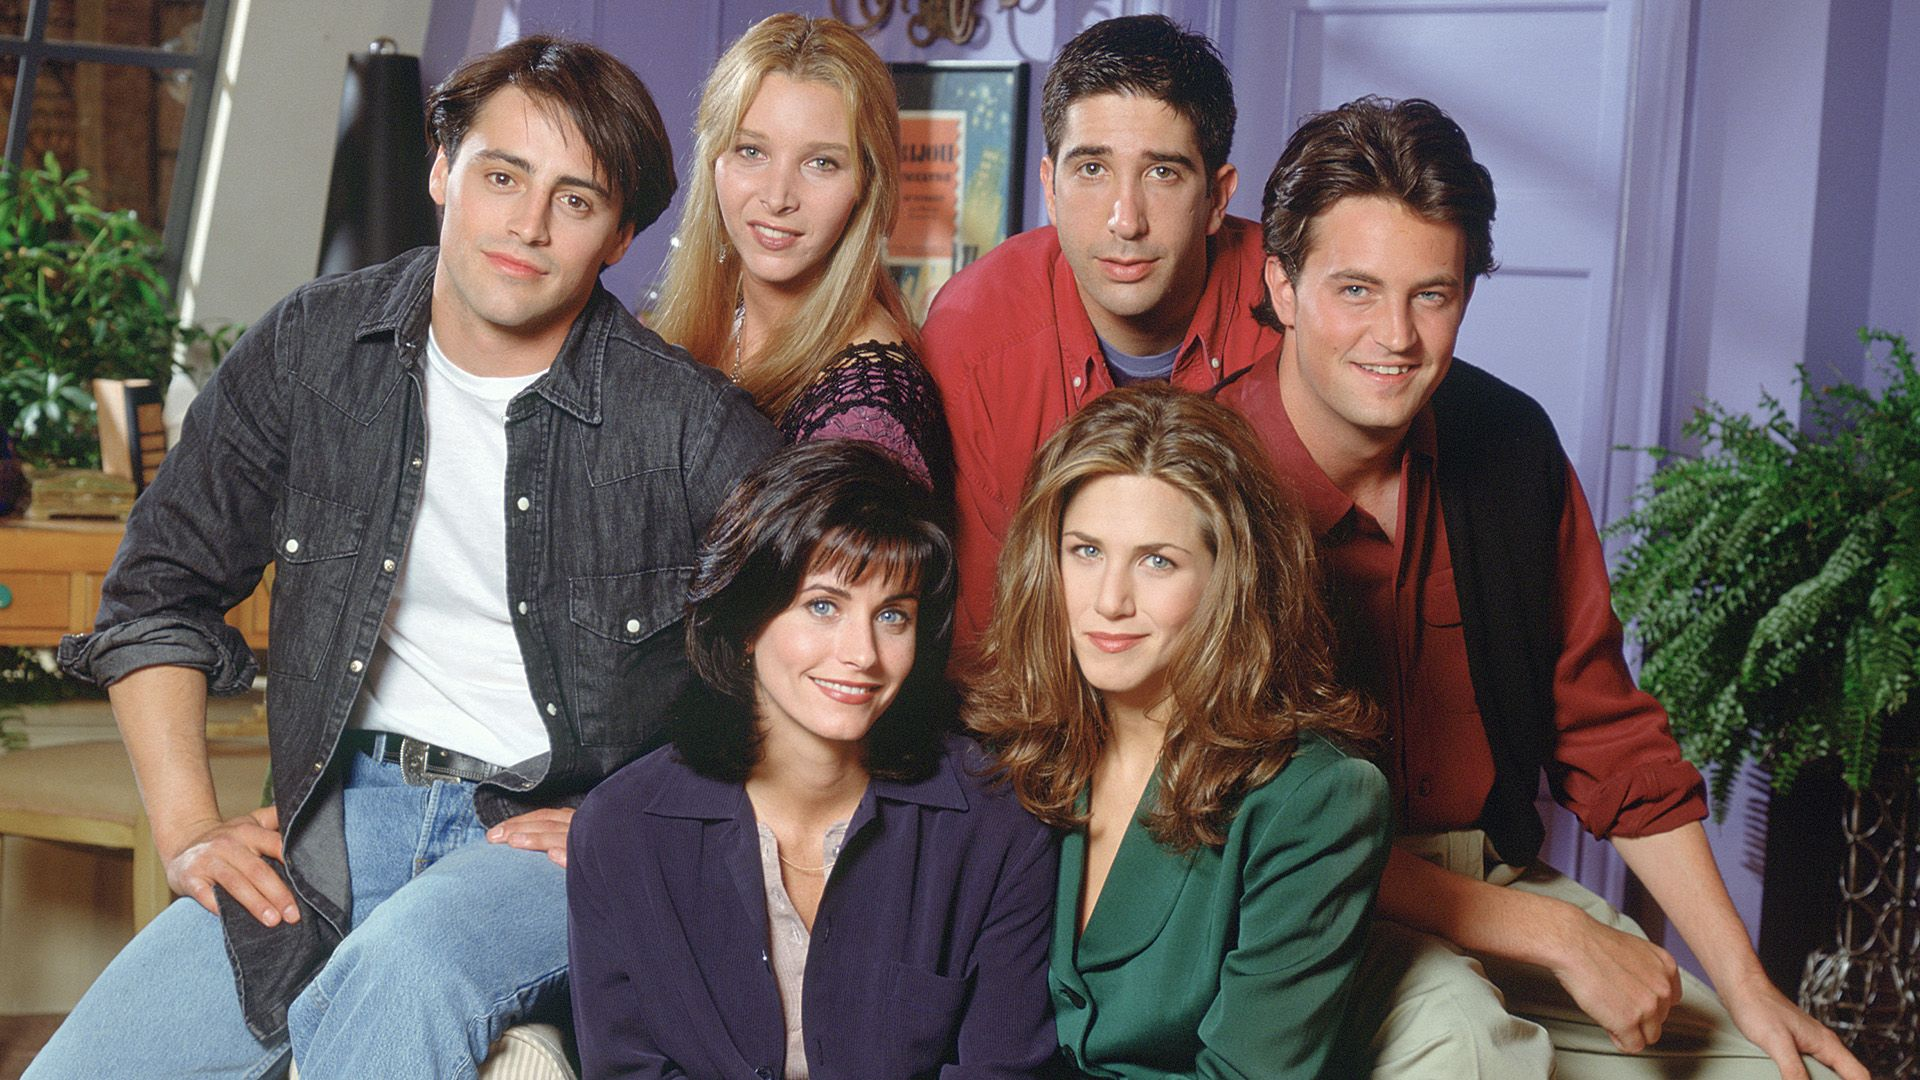 Friends co-creator Marta Kauffman says there are two episodes she didn't like